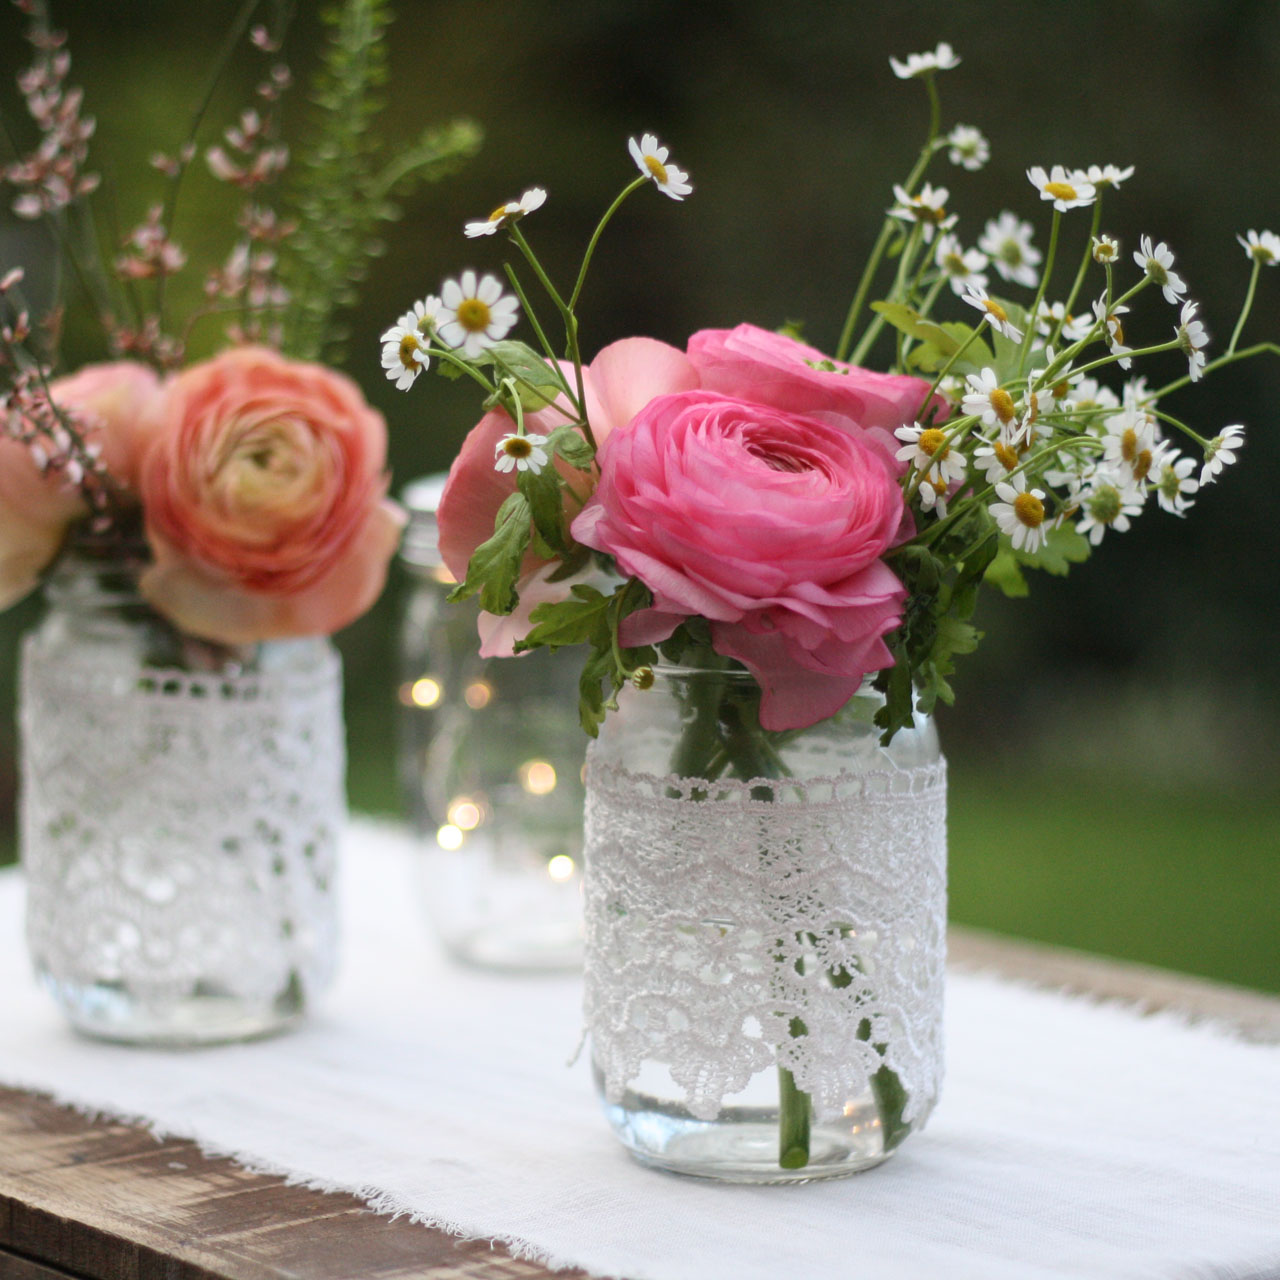 Flowers In Jars Wedding: Lace Covered Jars For Weddings